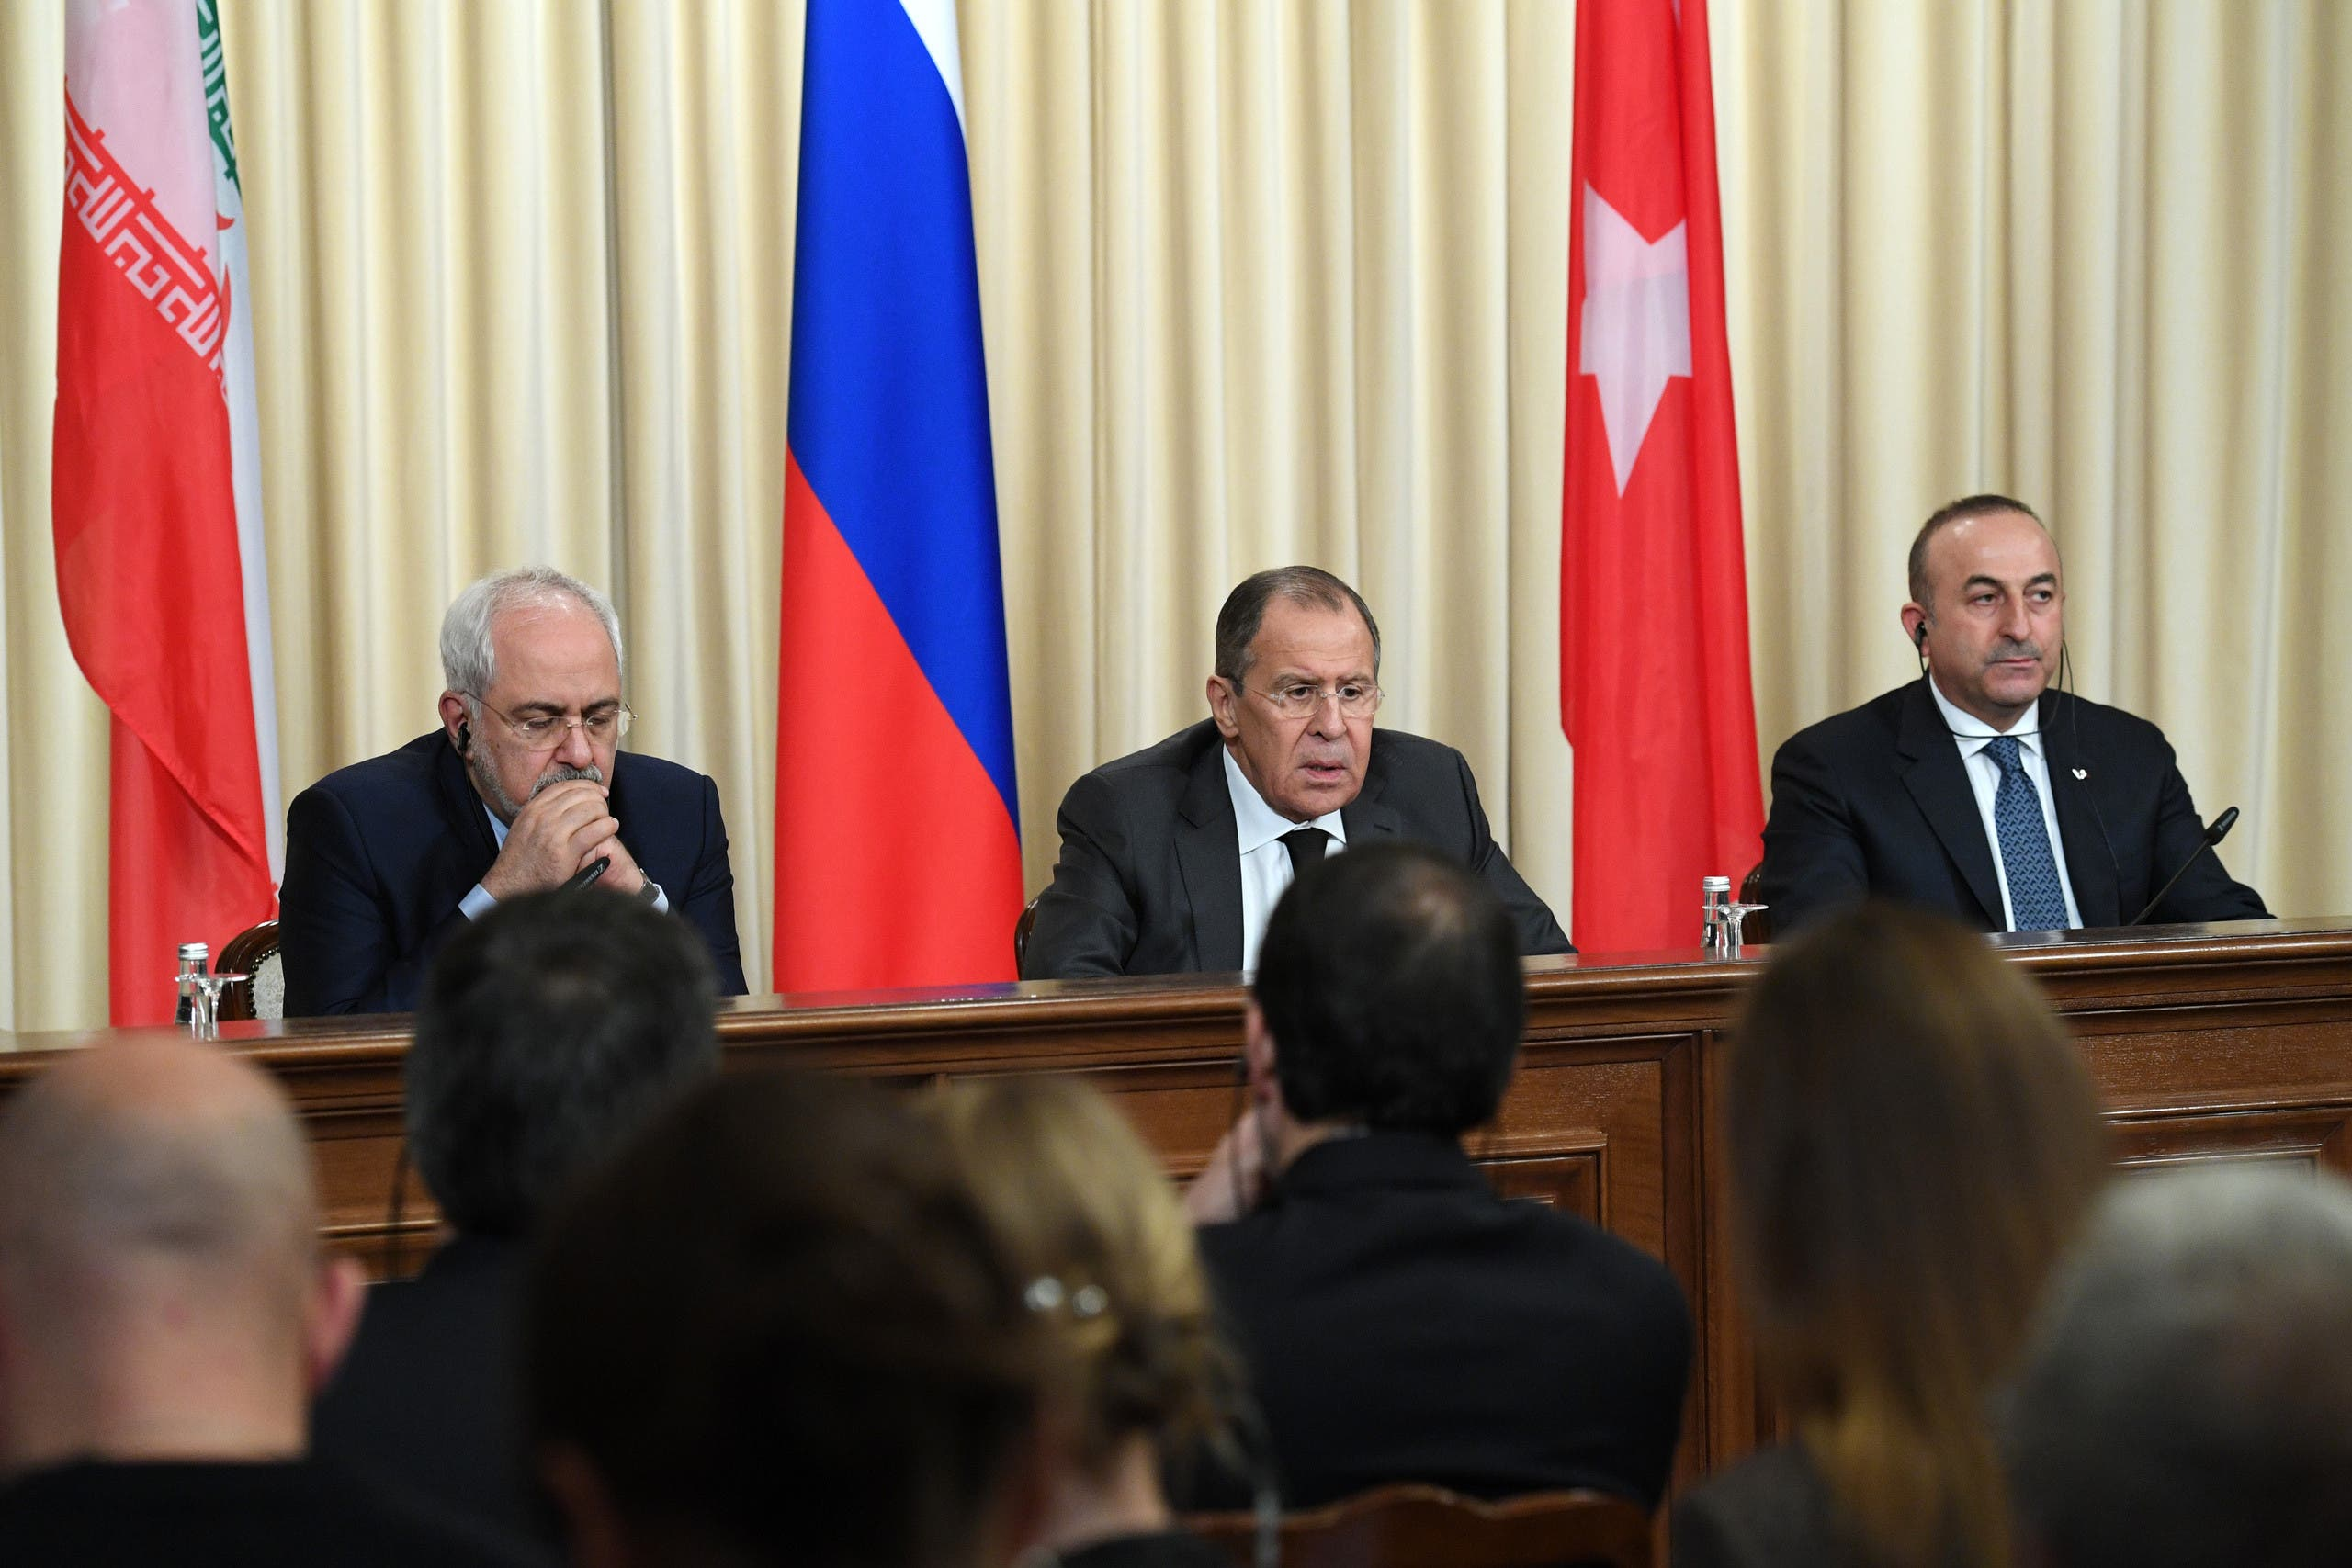 Iranian Foreign Minister Mohammad Javad Zarif, Russian Foreign Minister Sergei Lavrov and Turkish Foreign Minister Mevlut Cavusoglu attend a press conference in Moscow on December 20, 2016. (AFP)